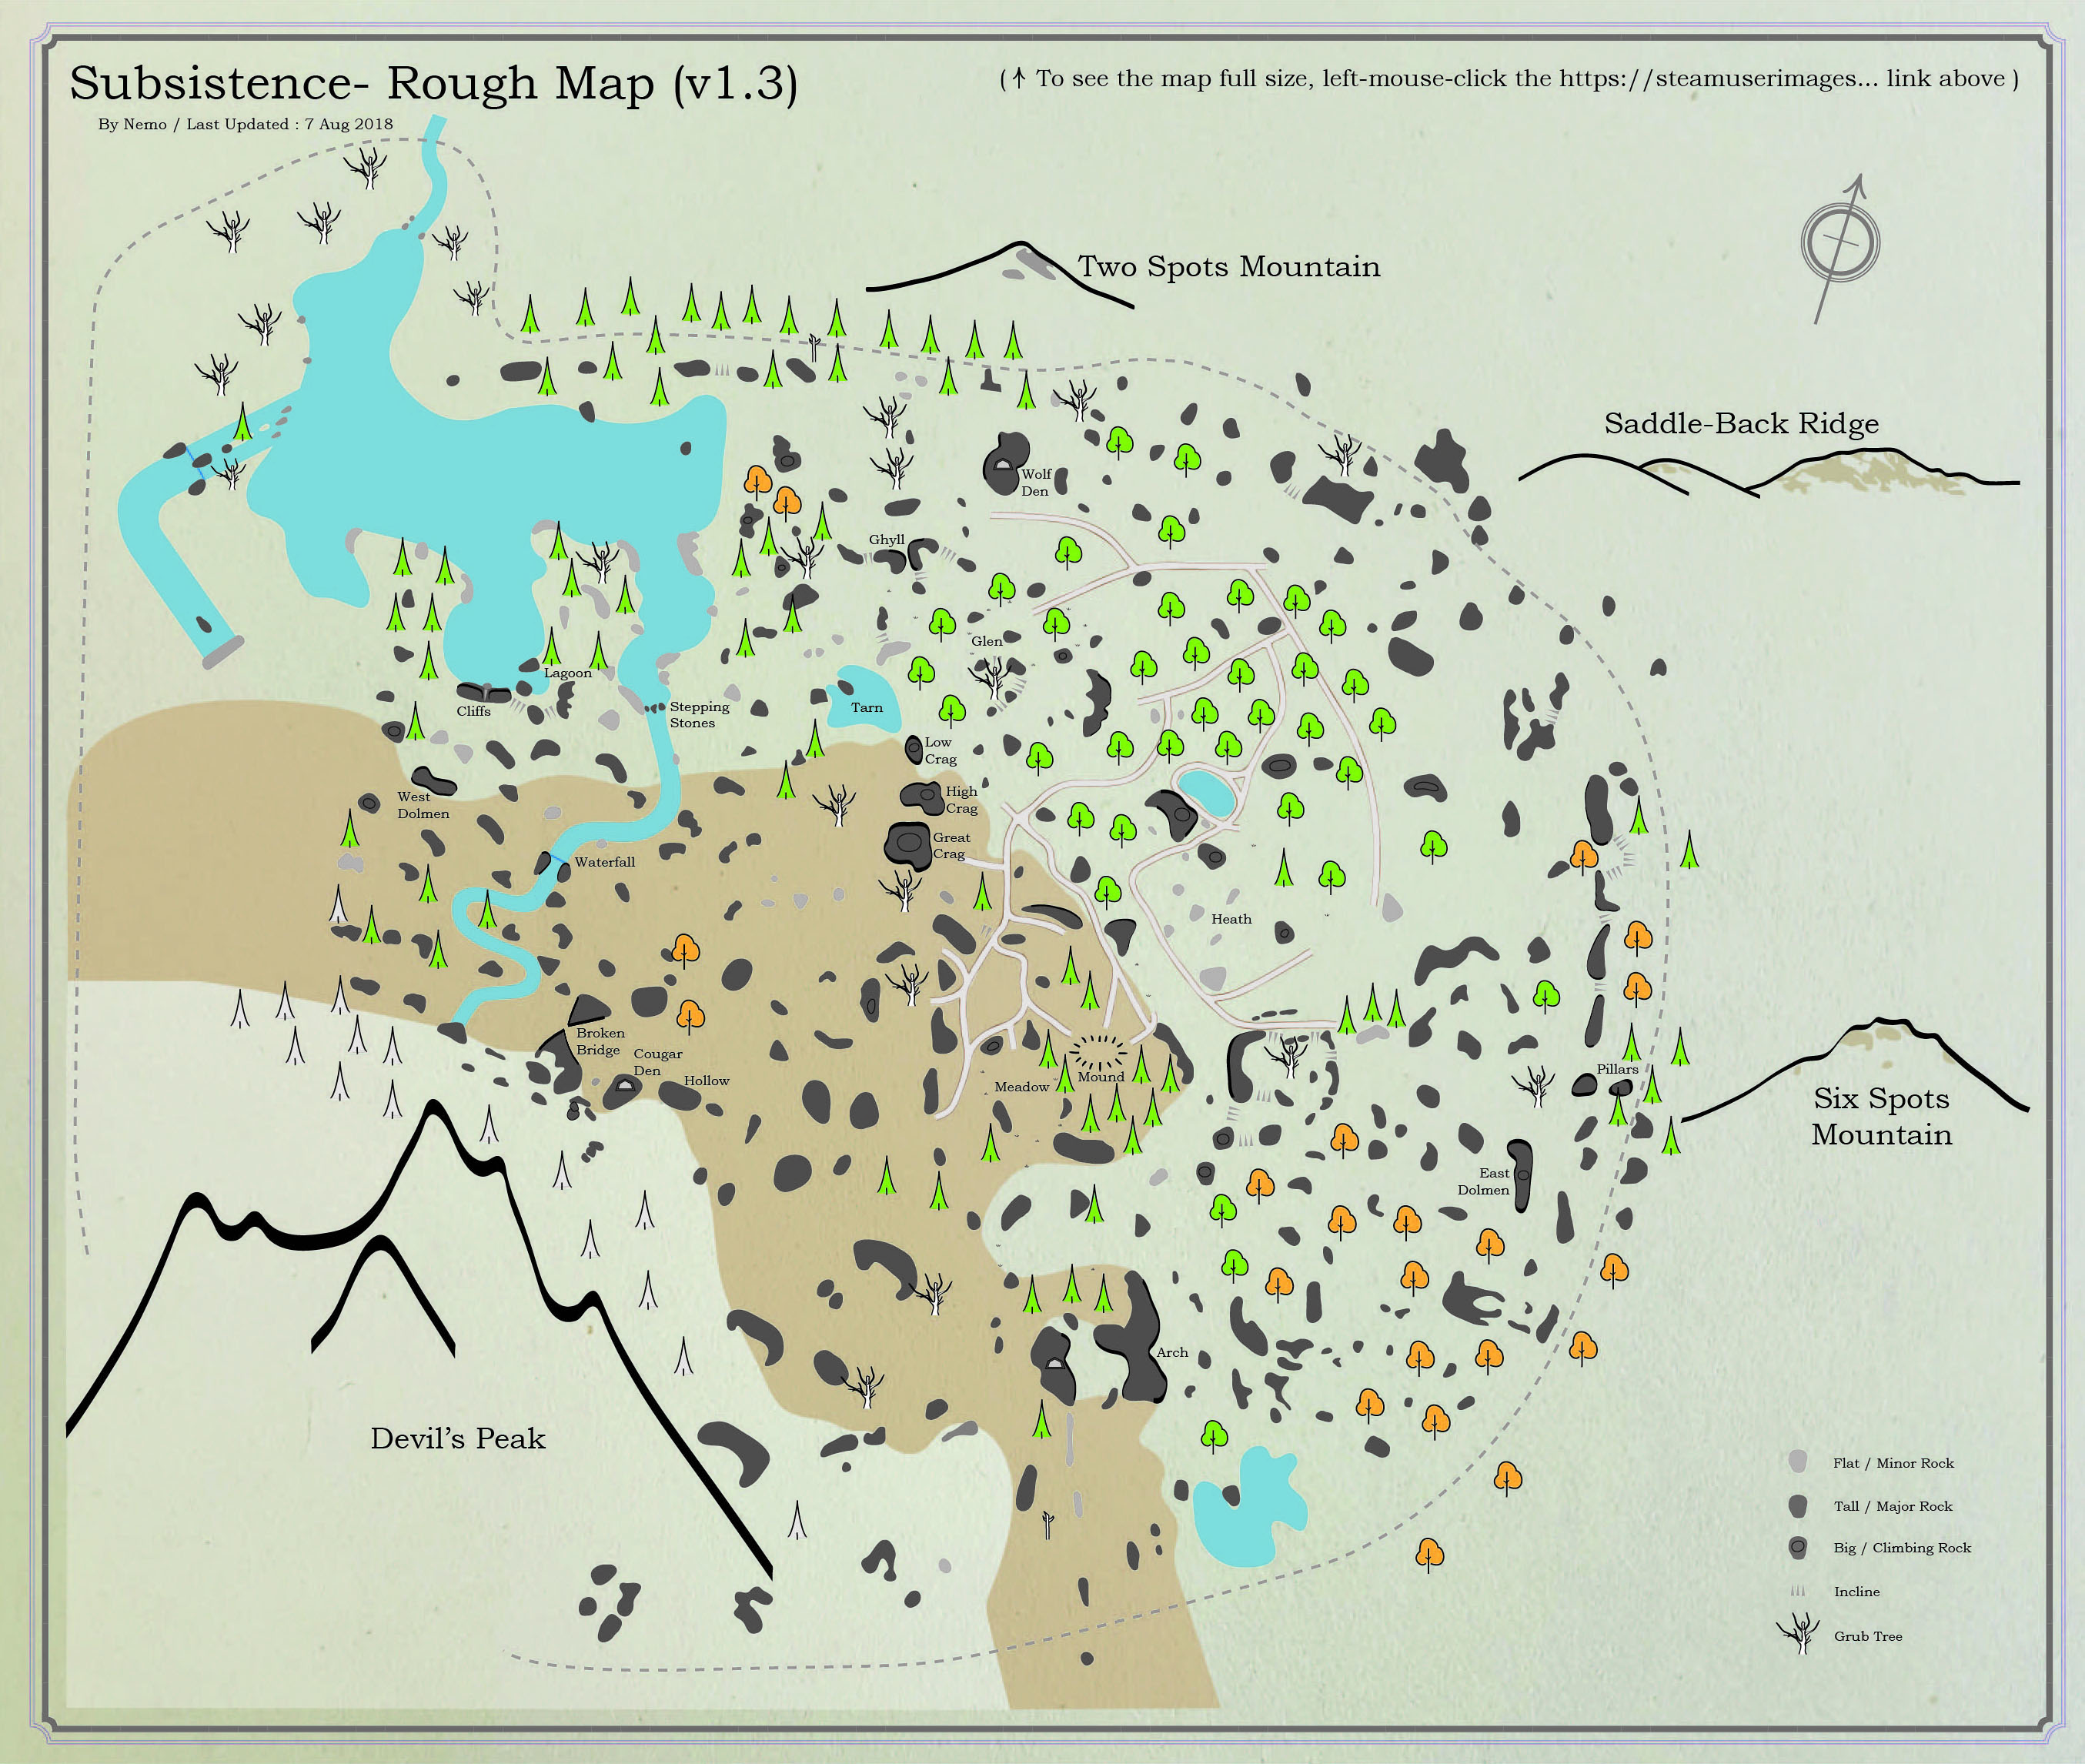 Subsistence Rough Map